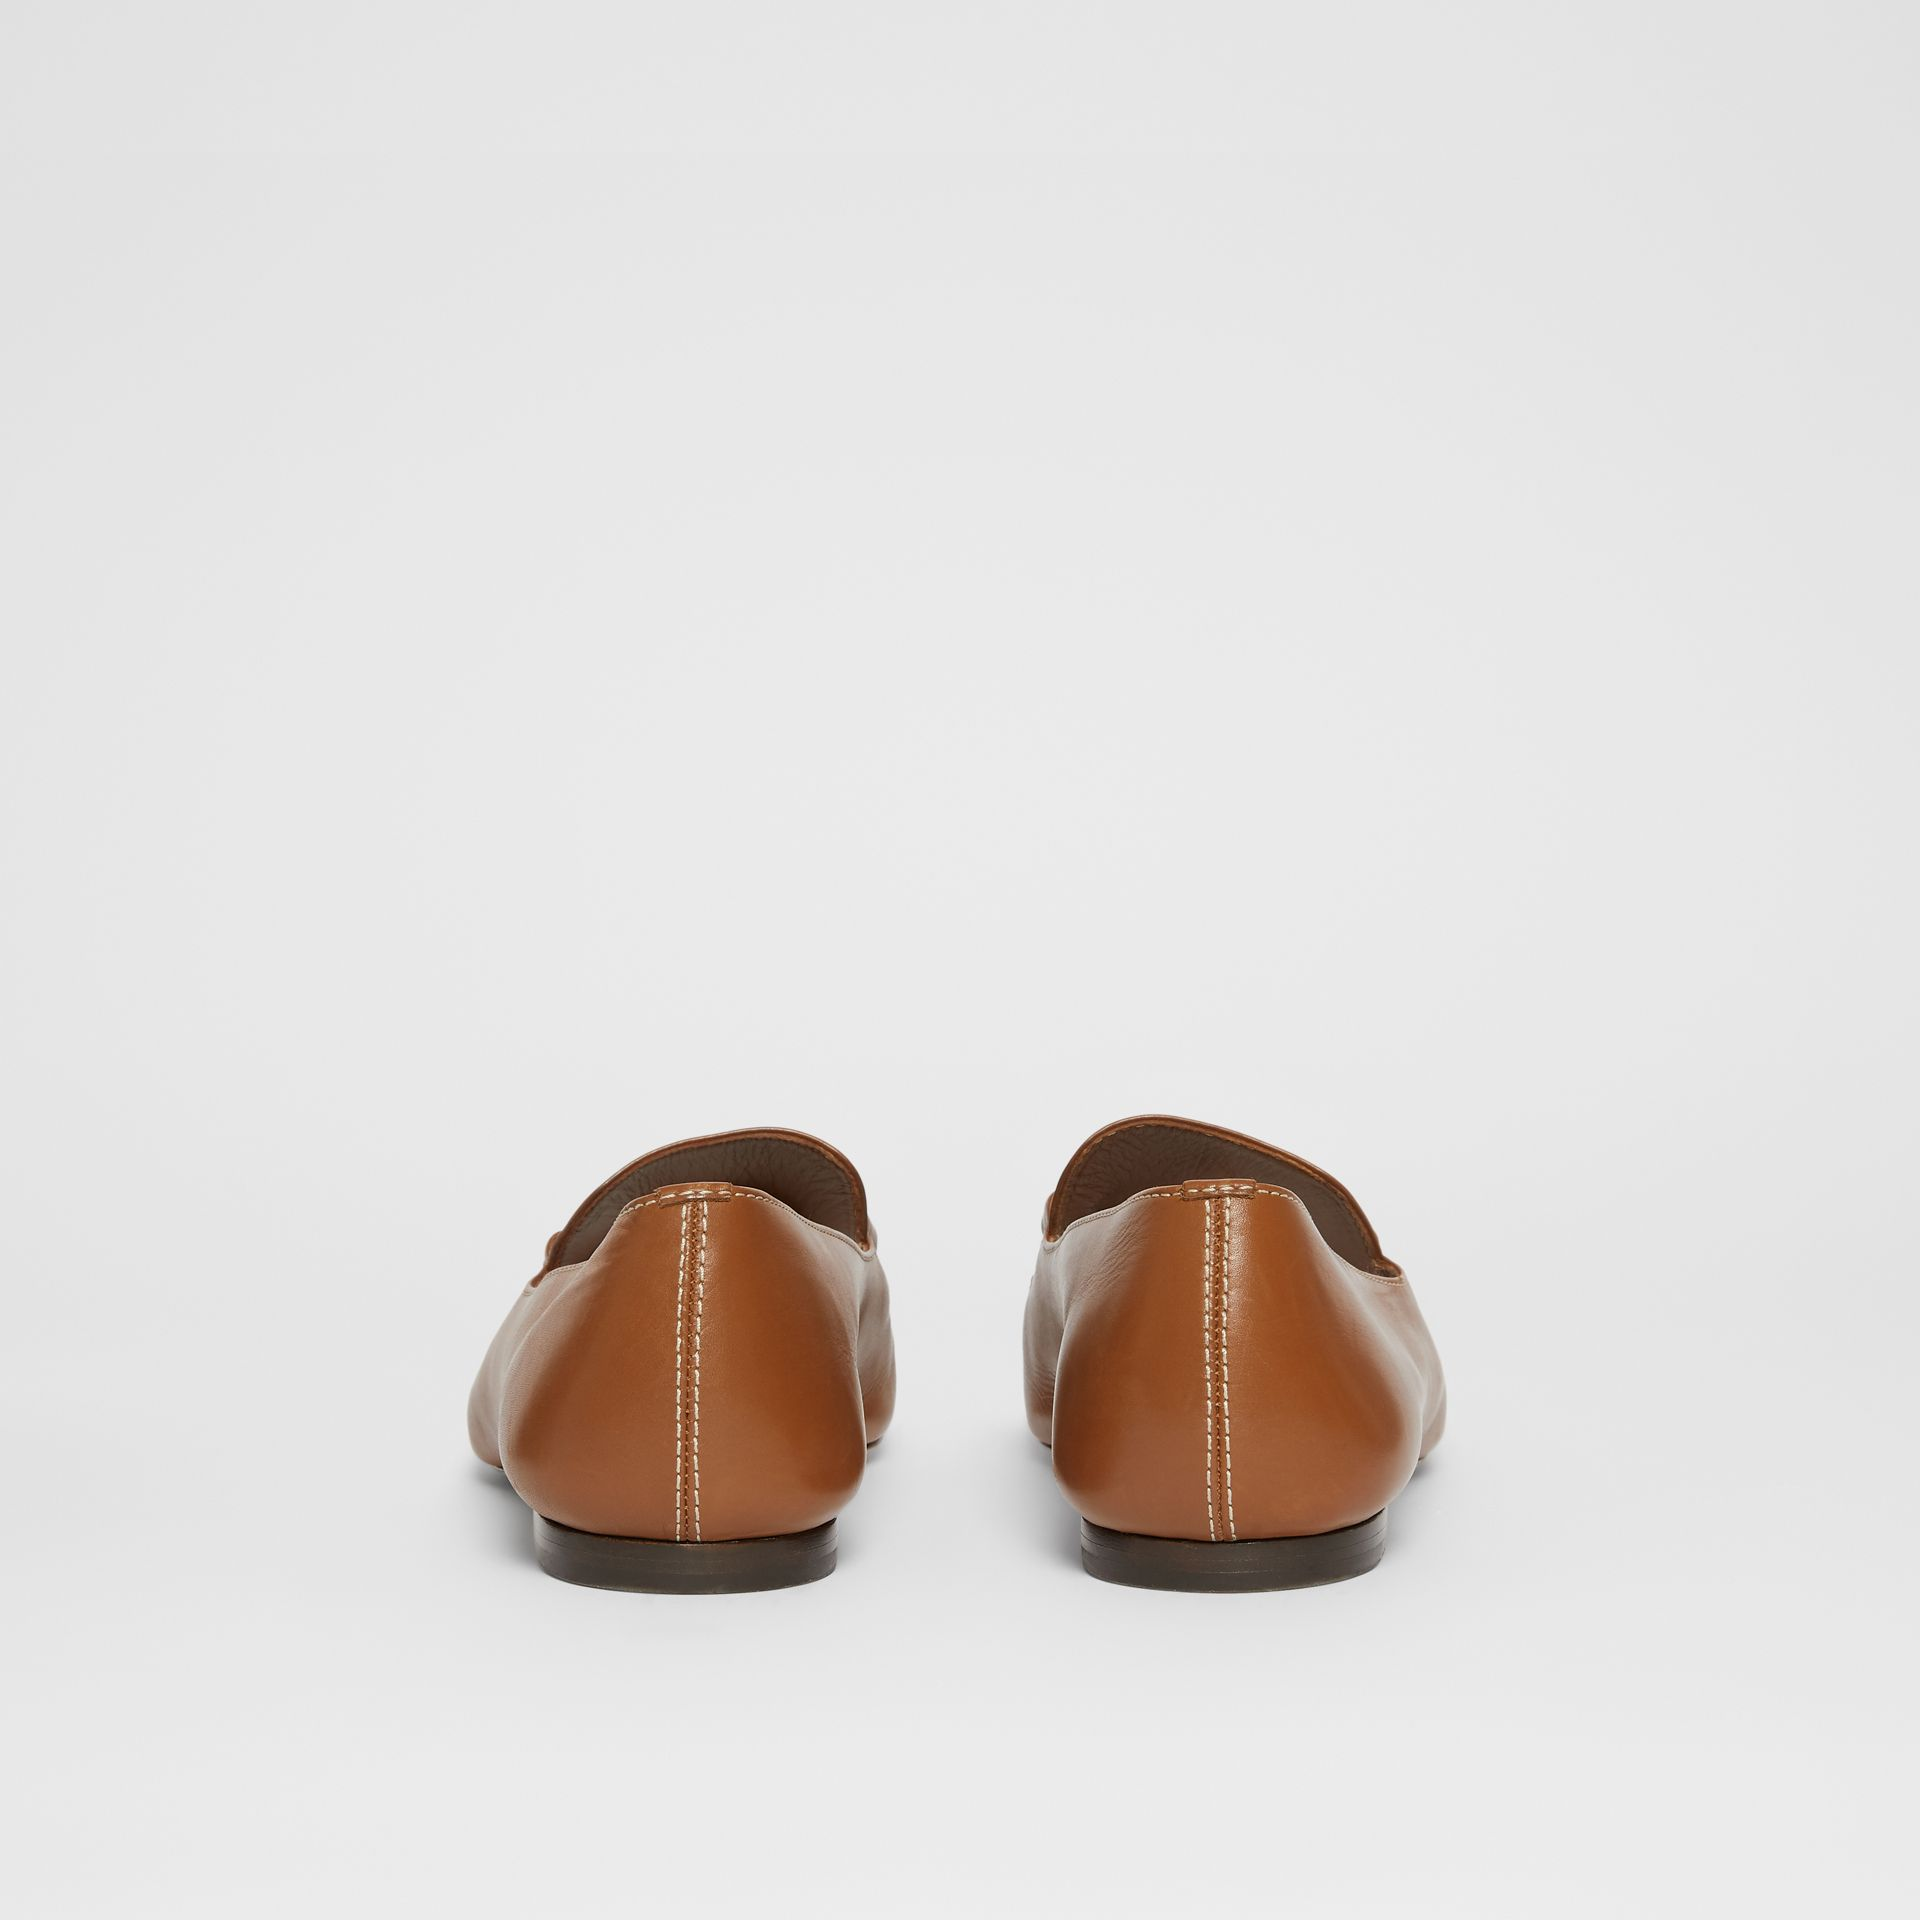 Monogram Motif Leather Loafers in Tan - Women | Burberry United Kingdom - gallery image 4